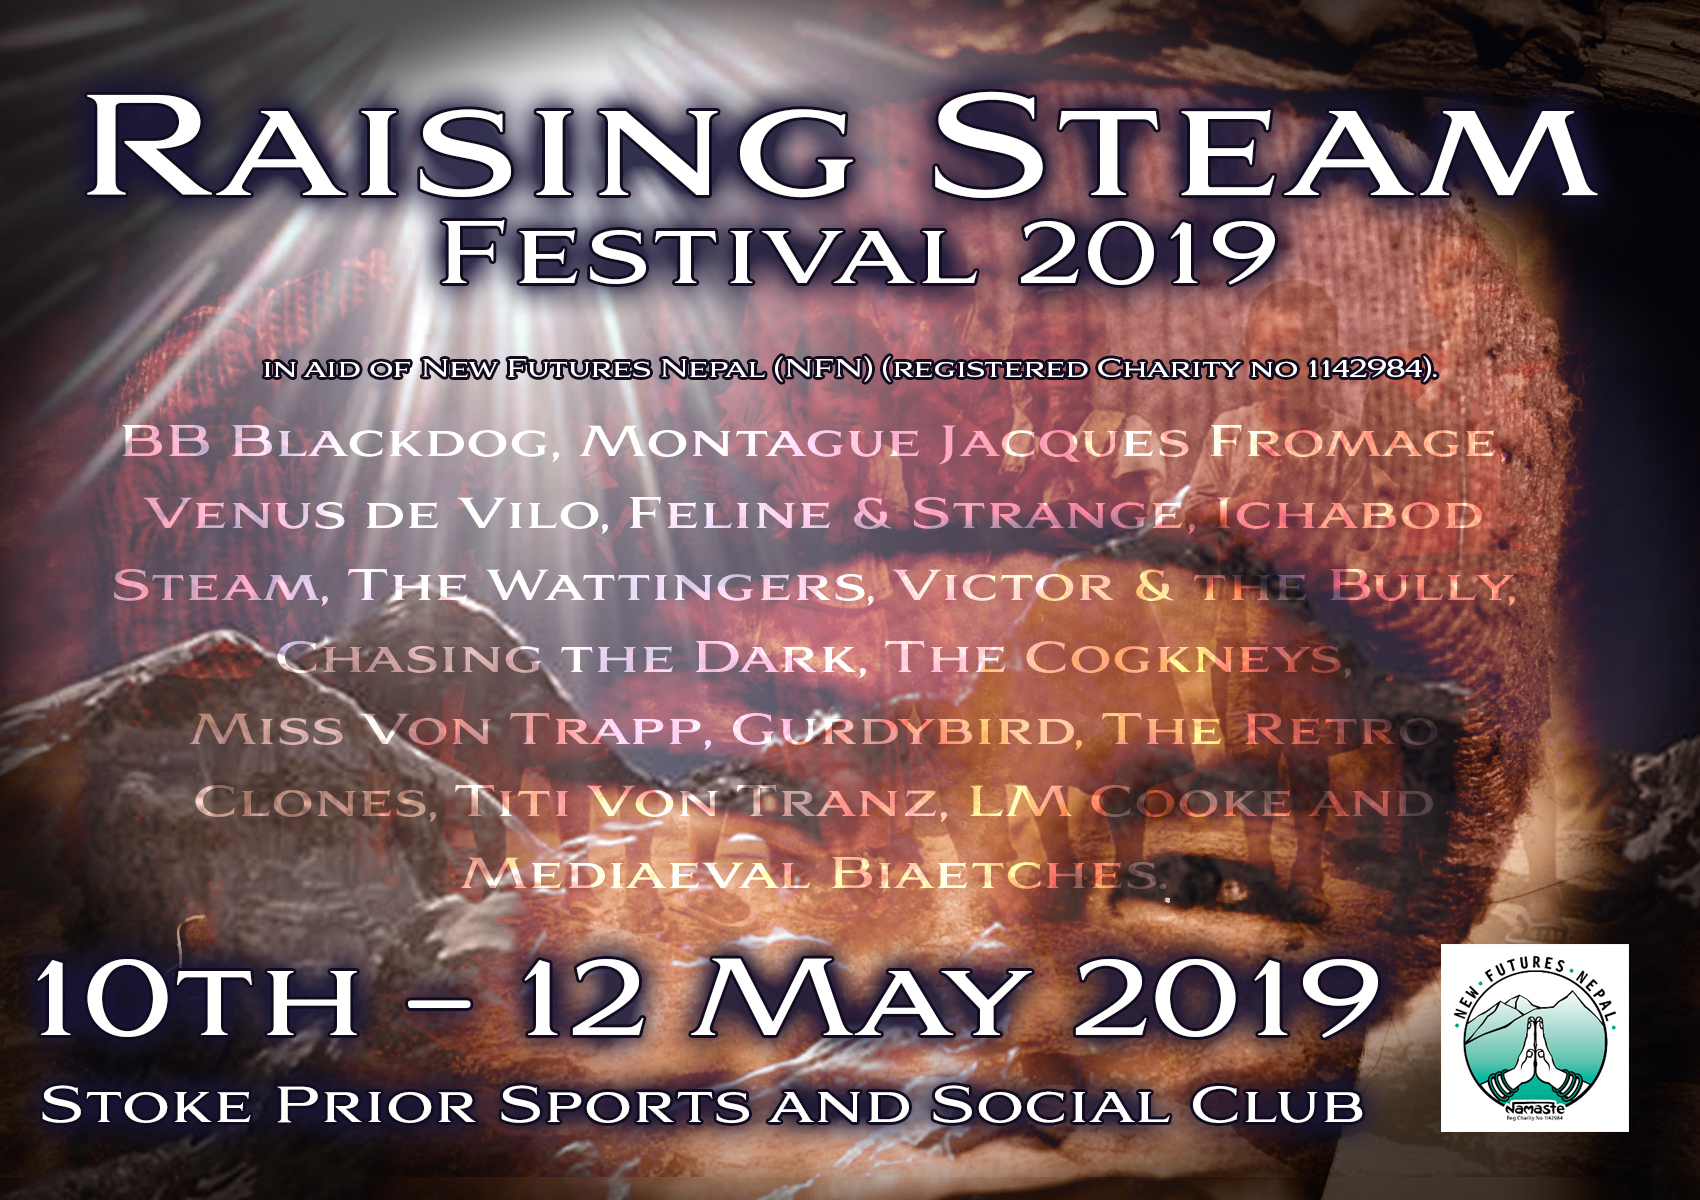 Raising Steam Festival 2019 at Stoke Prior Sports and